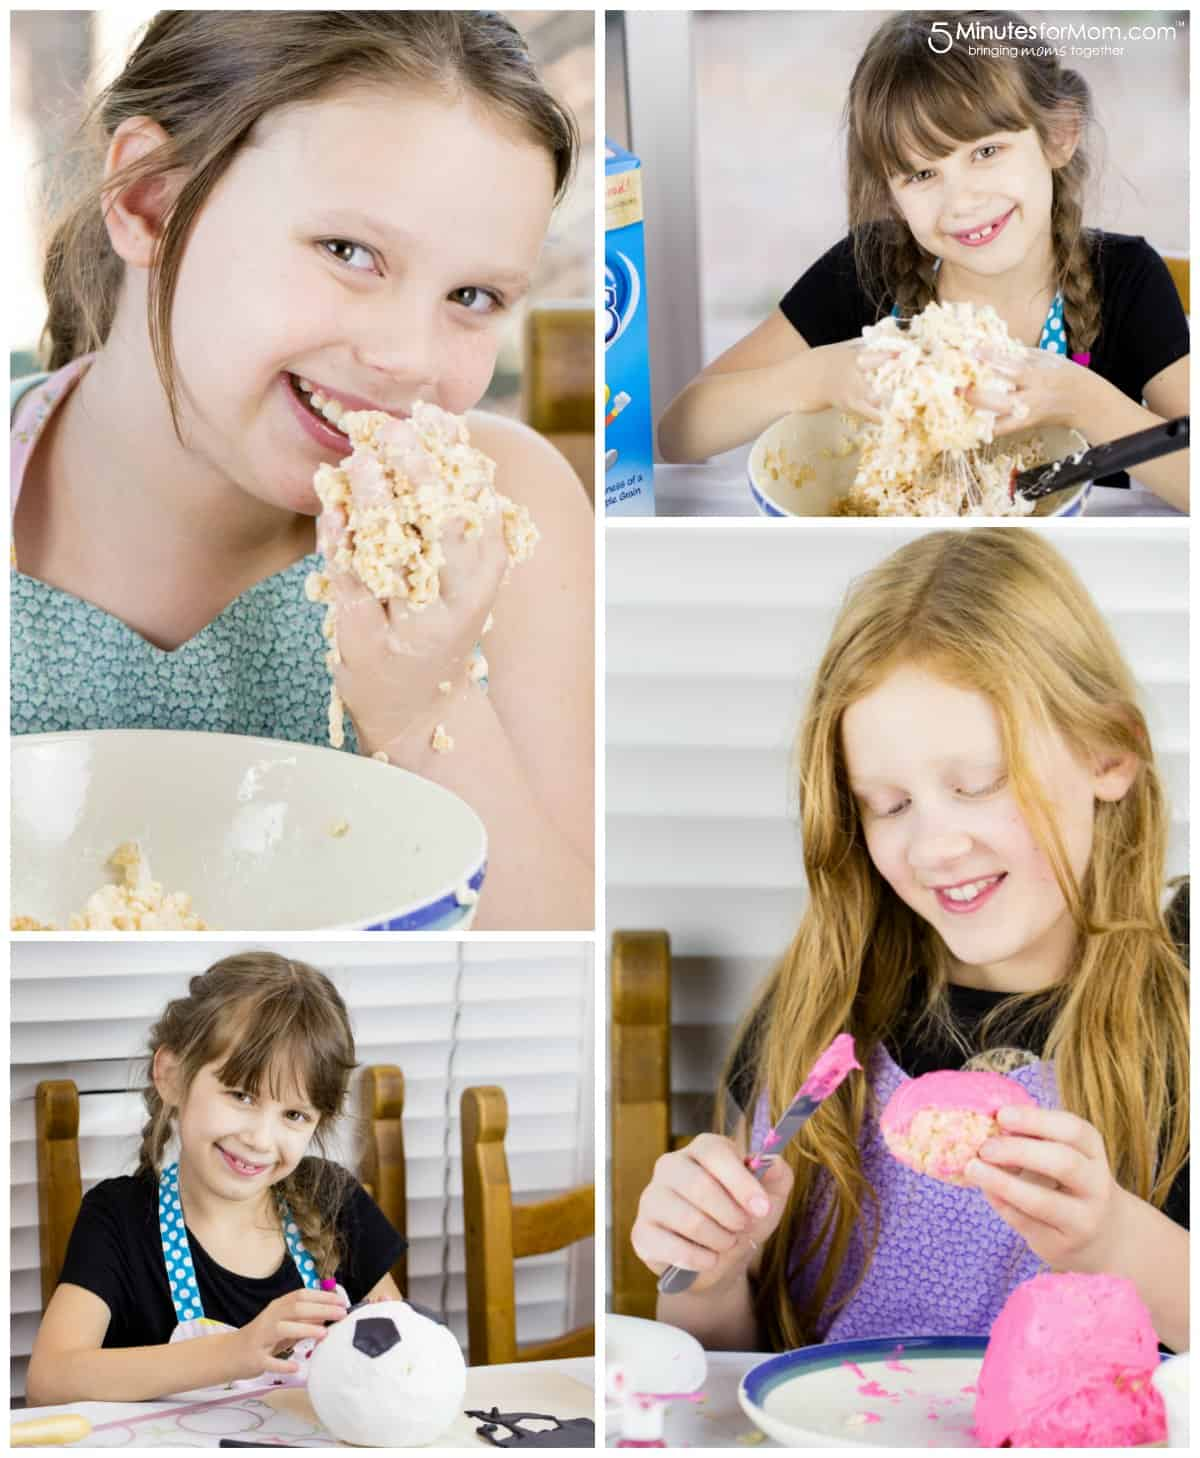 rice-krispies-treats-for-toys